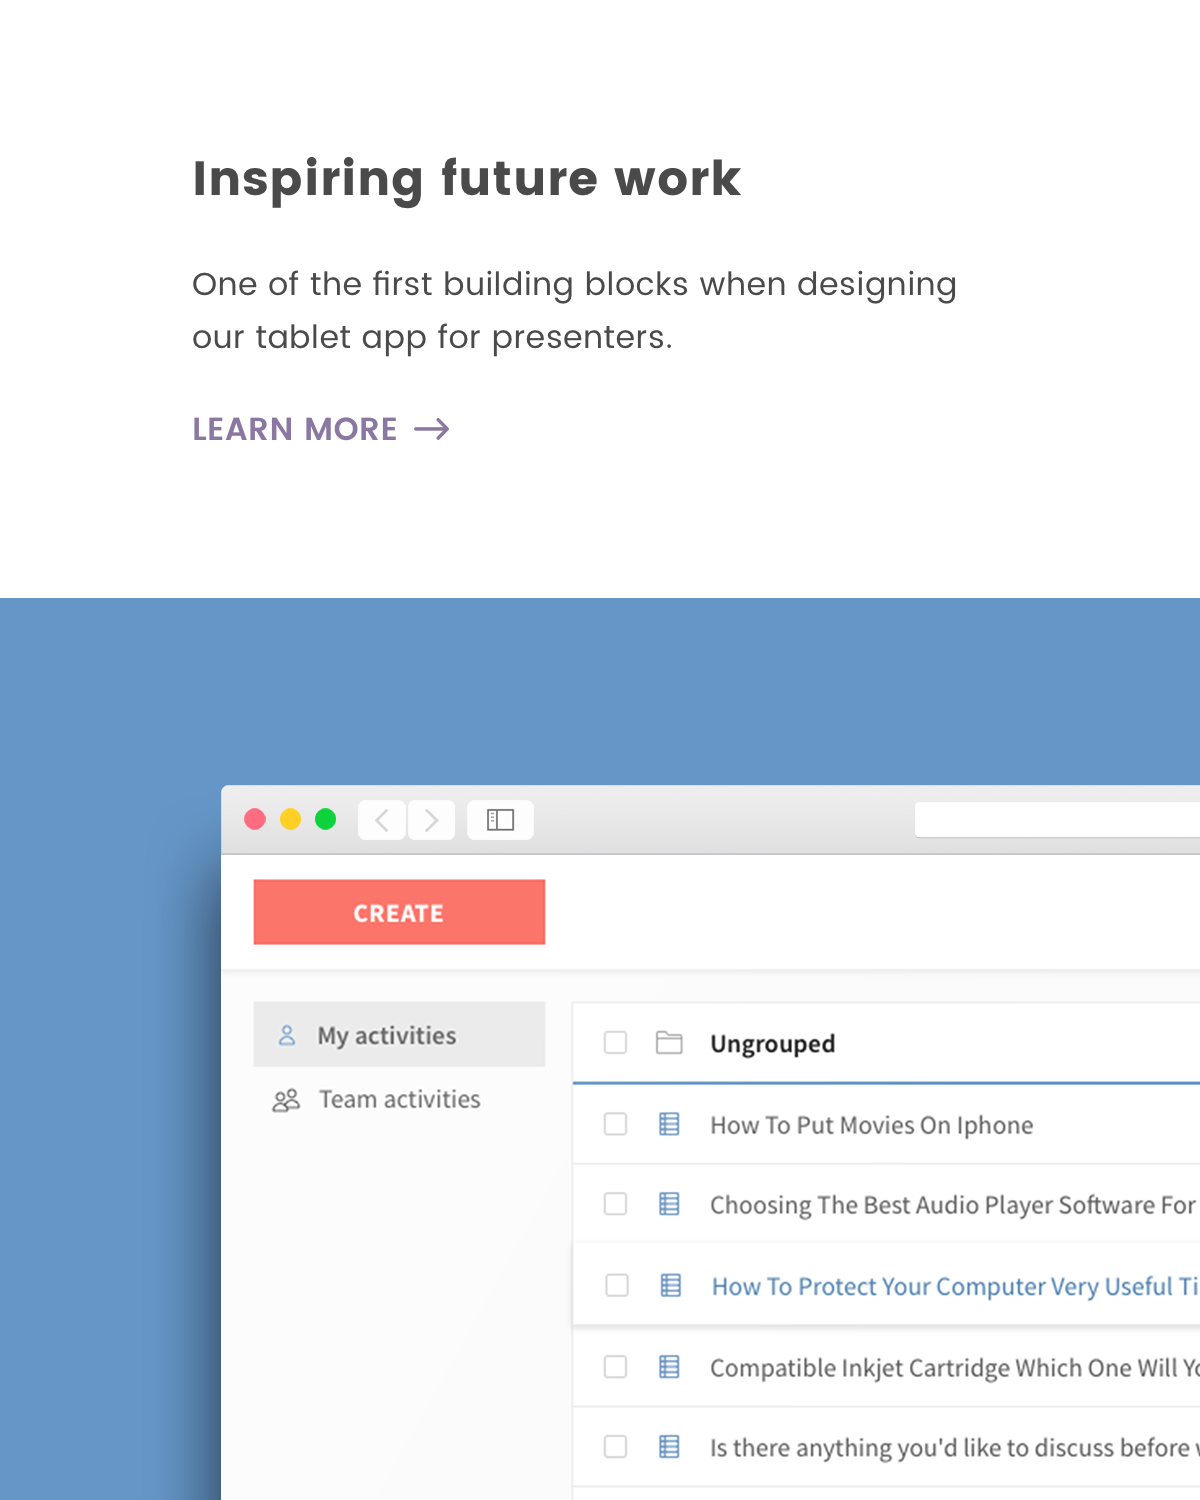 Inspiring a tablet app for presenters